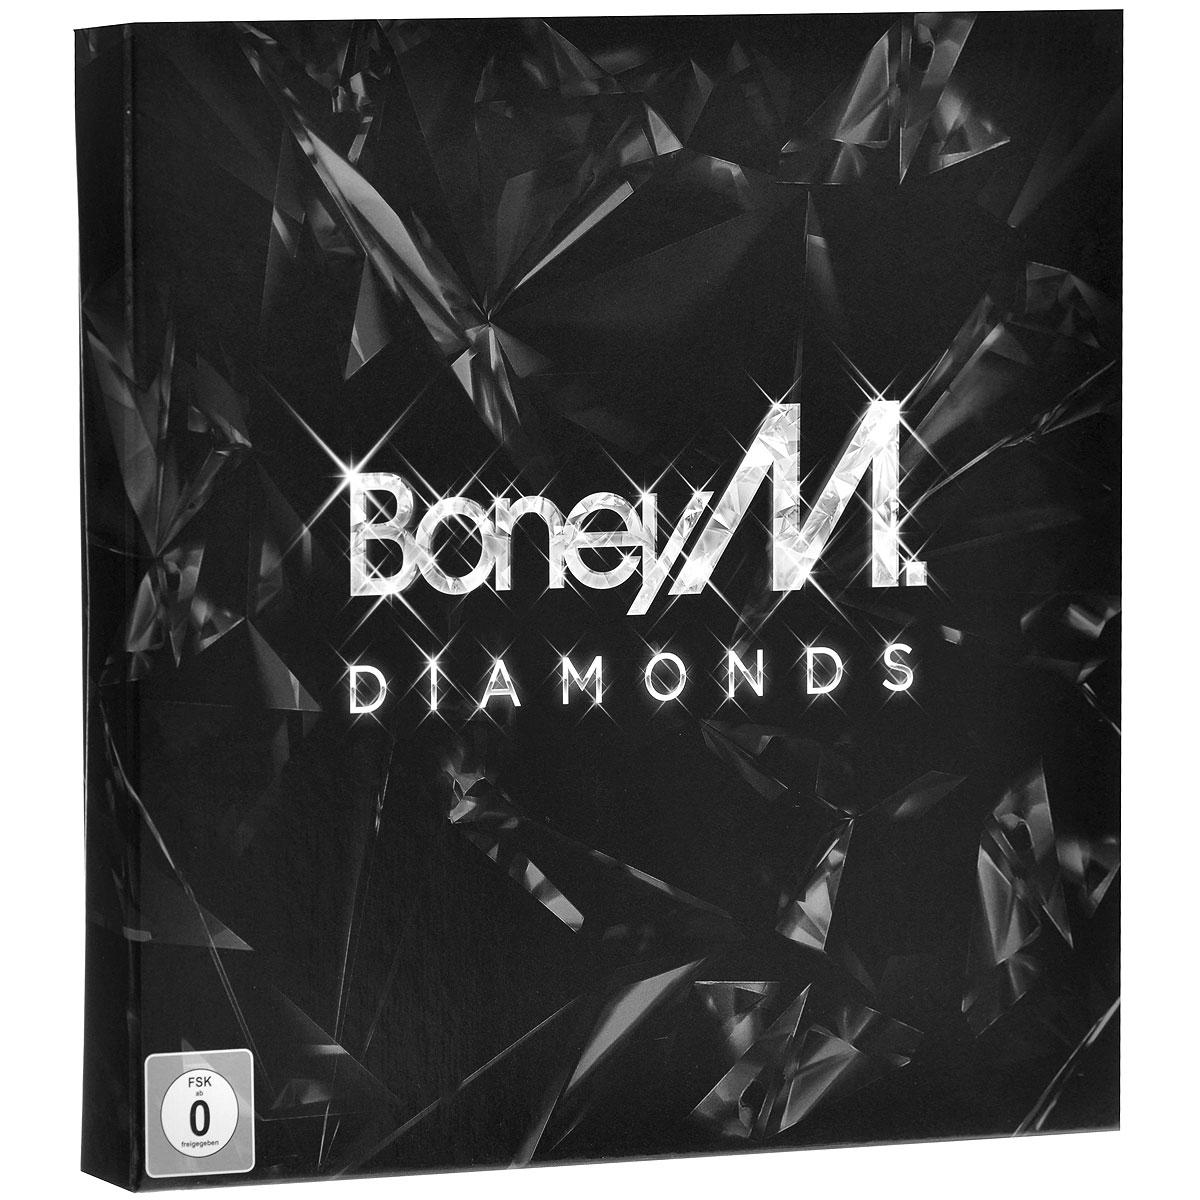 Boney M Boney M. Diamonds (3 CD + DVD + LP) анита уорд boney m джон пол янг odyssey джесси грин линда клифорд disco anthology 3 cd